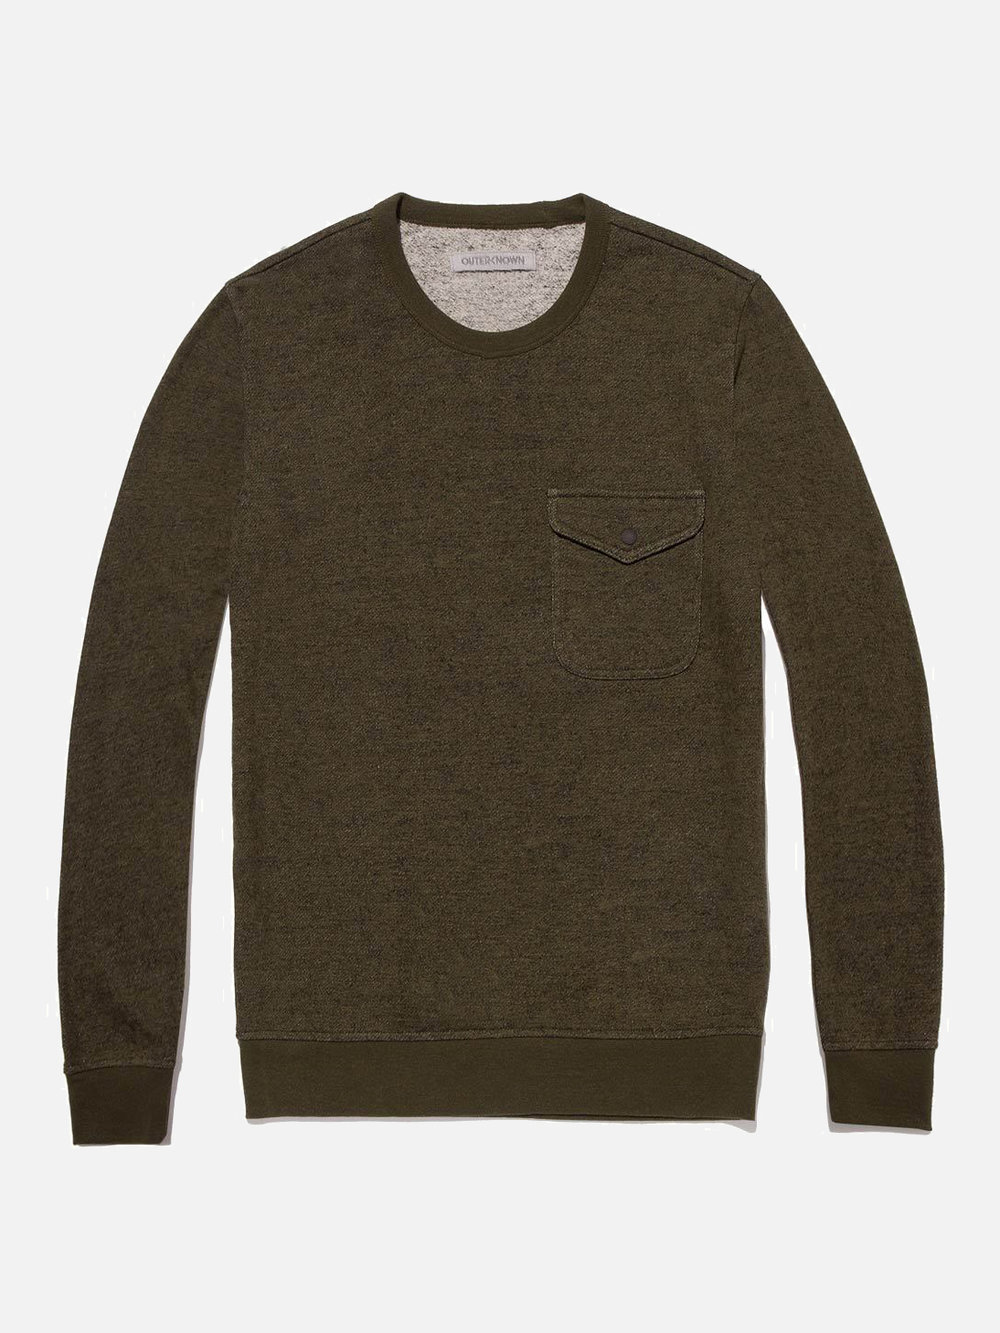 Pavement Sweatshirt by Outerknown | Men's Capsule Wardrobe on The Good Trade